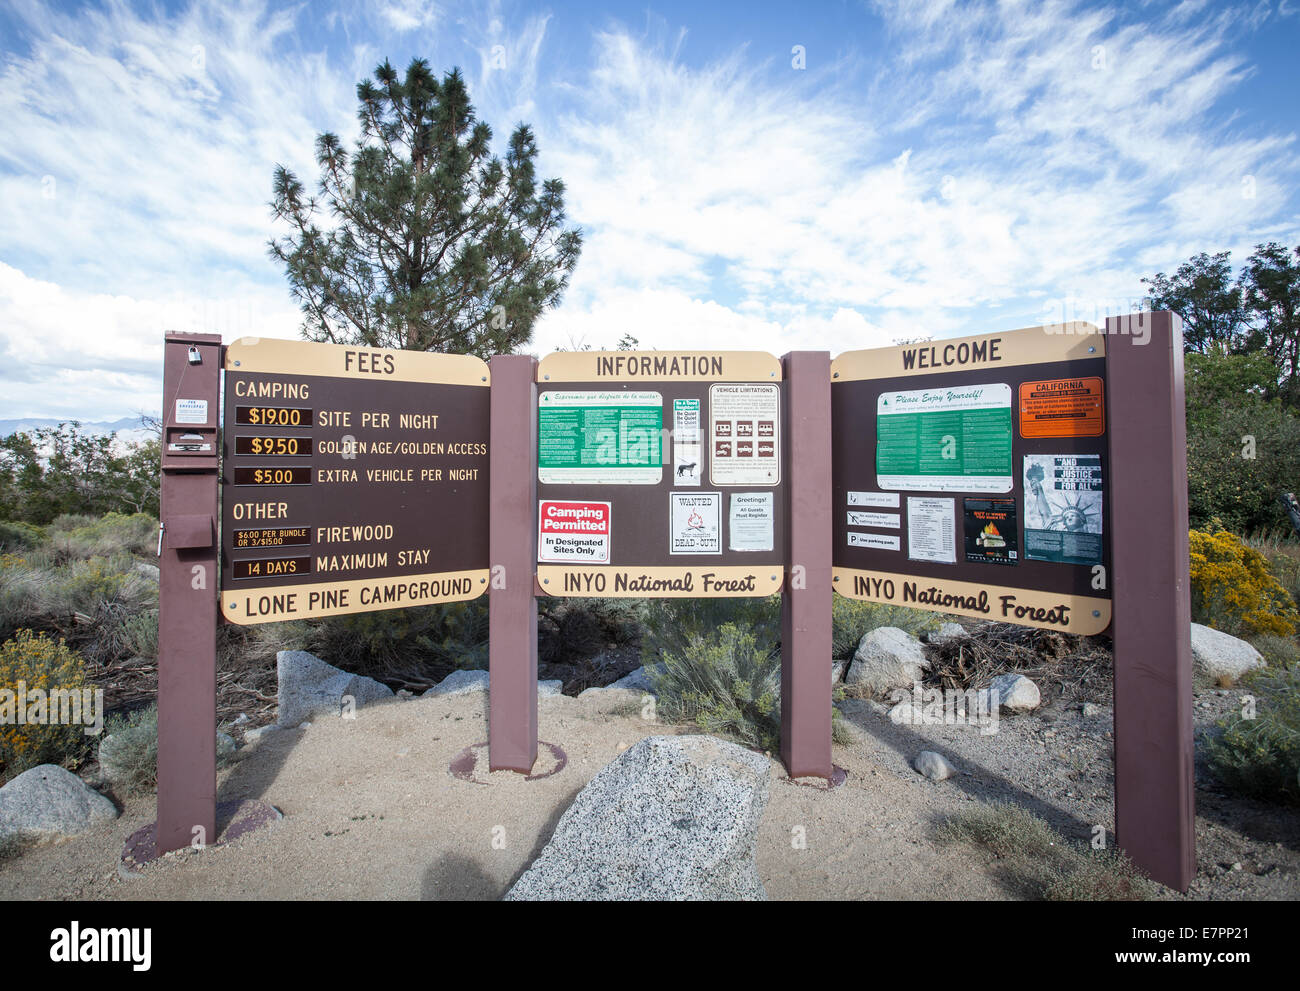 Fees and Information boards at a campground in the Inyo National Forest. - Stock Image